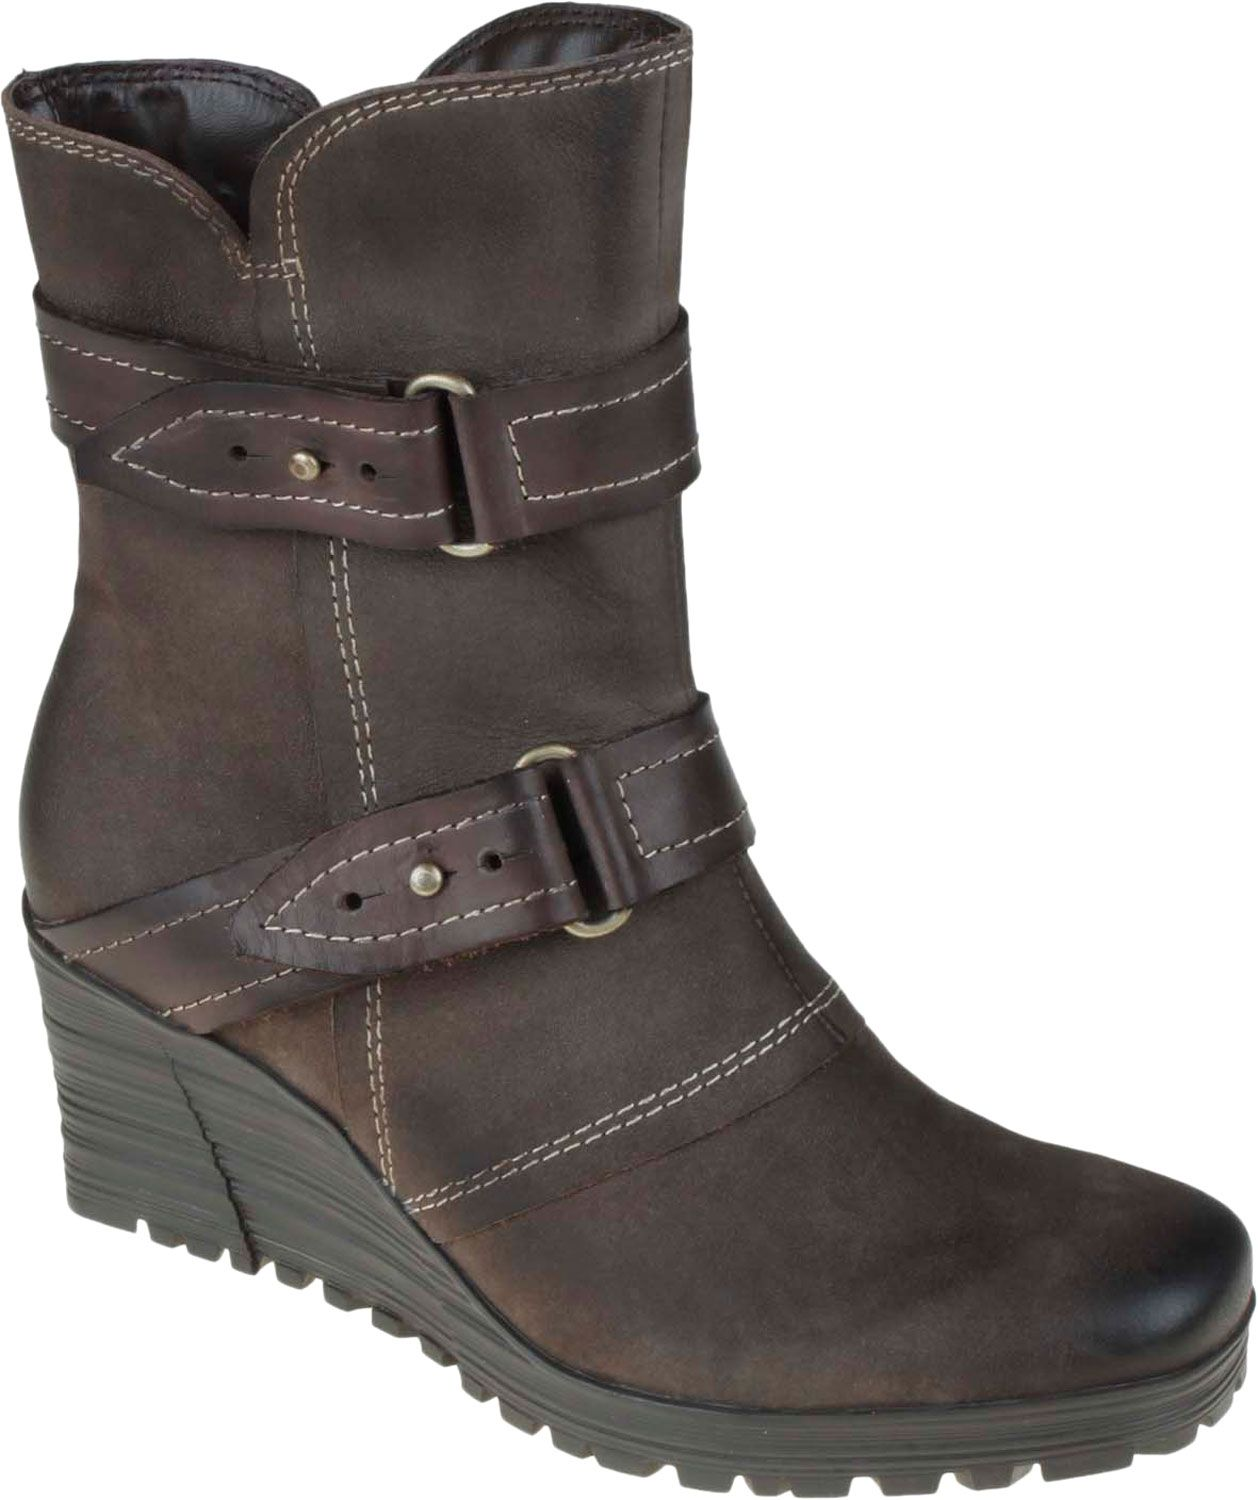 Love these wedge boots!! @EarthFootwear